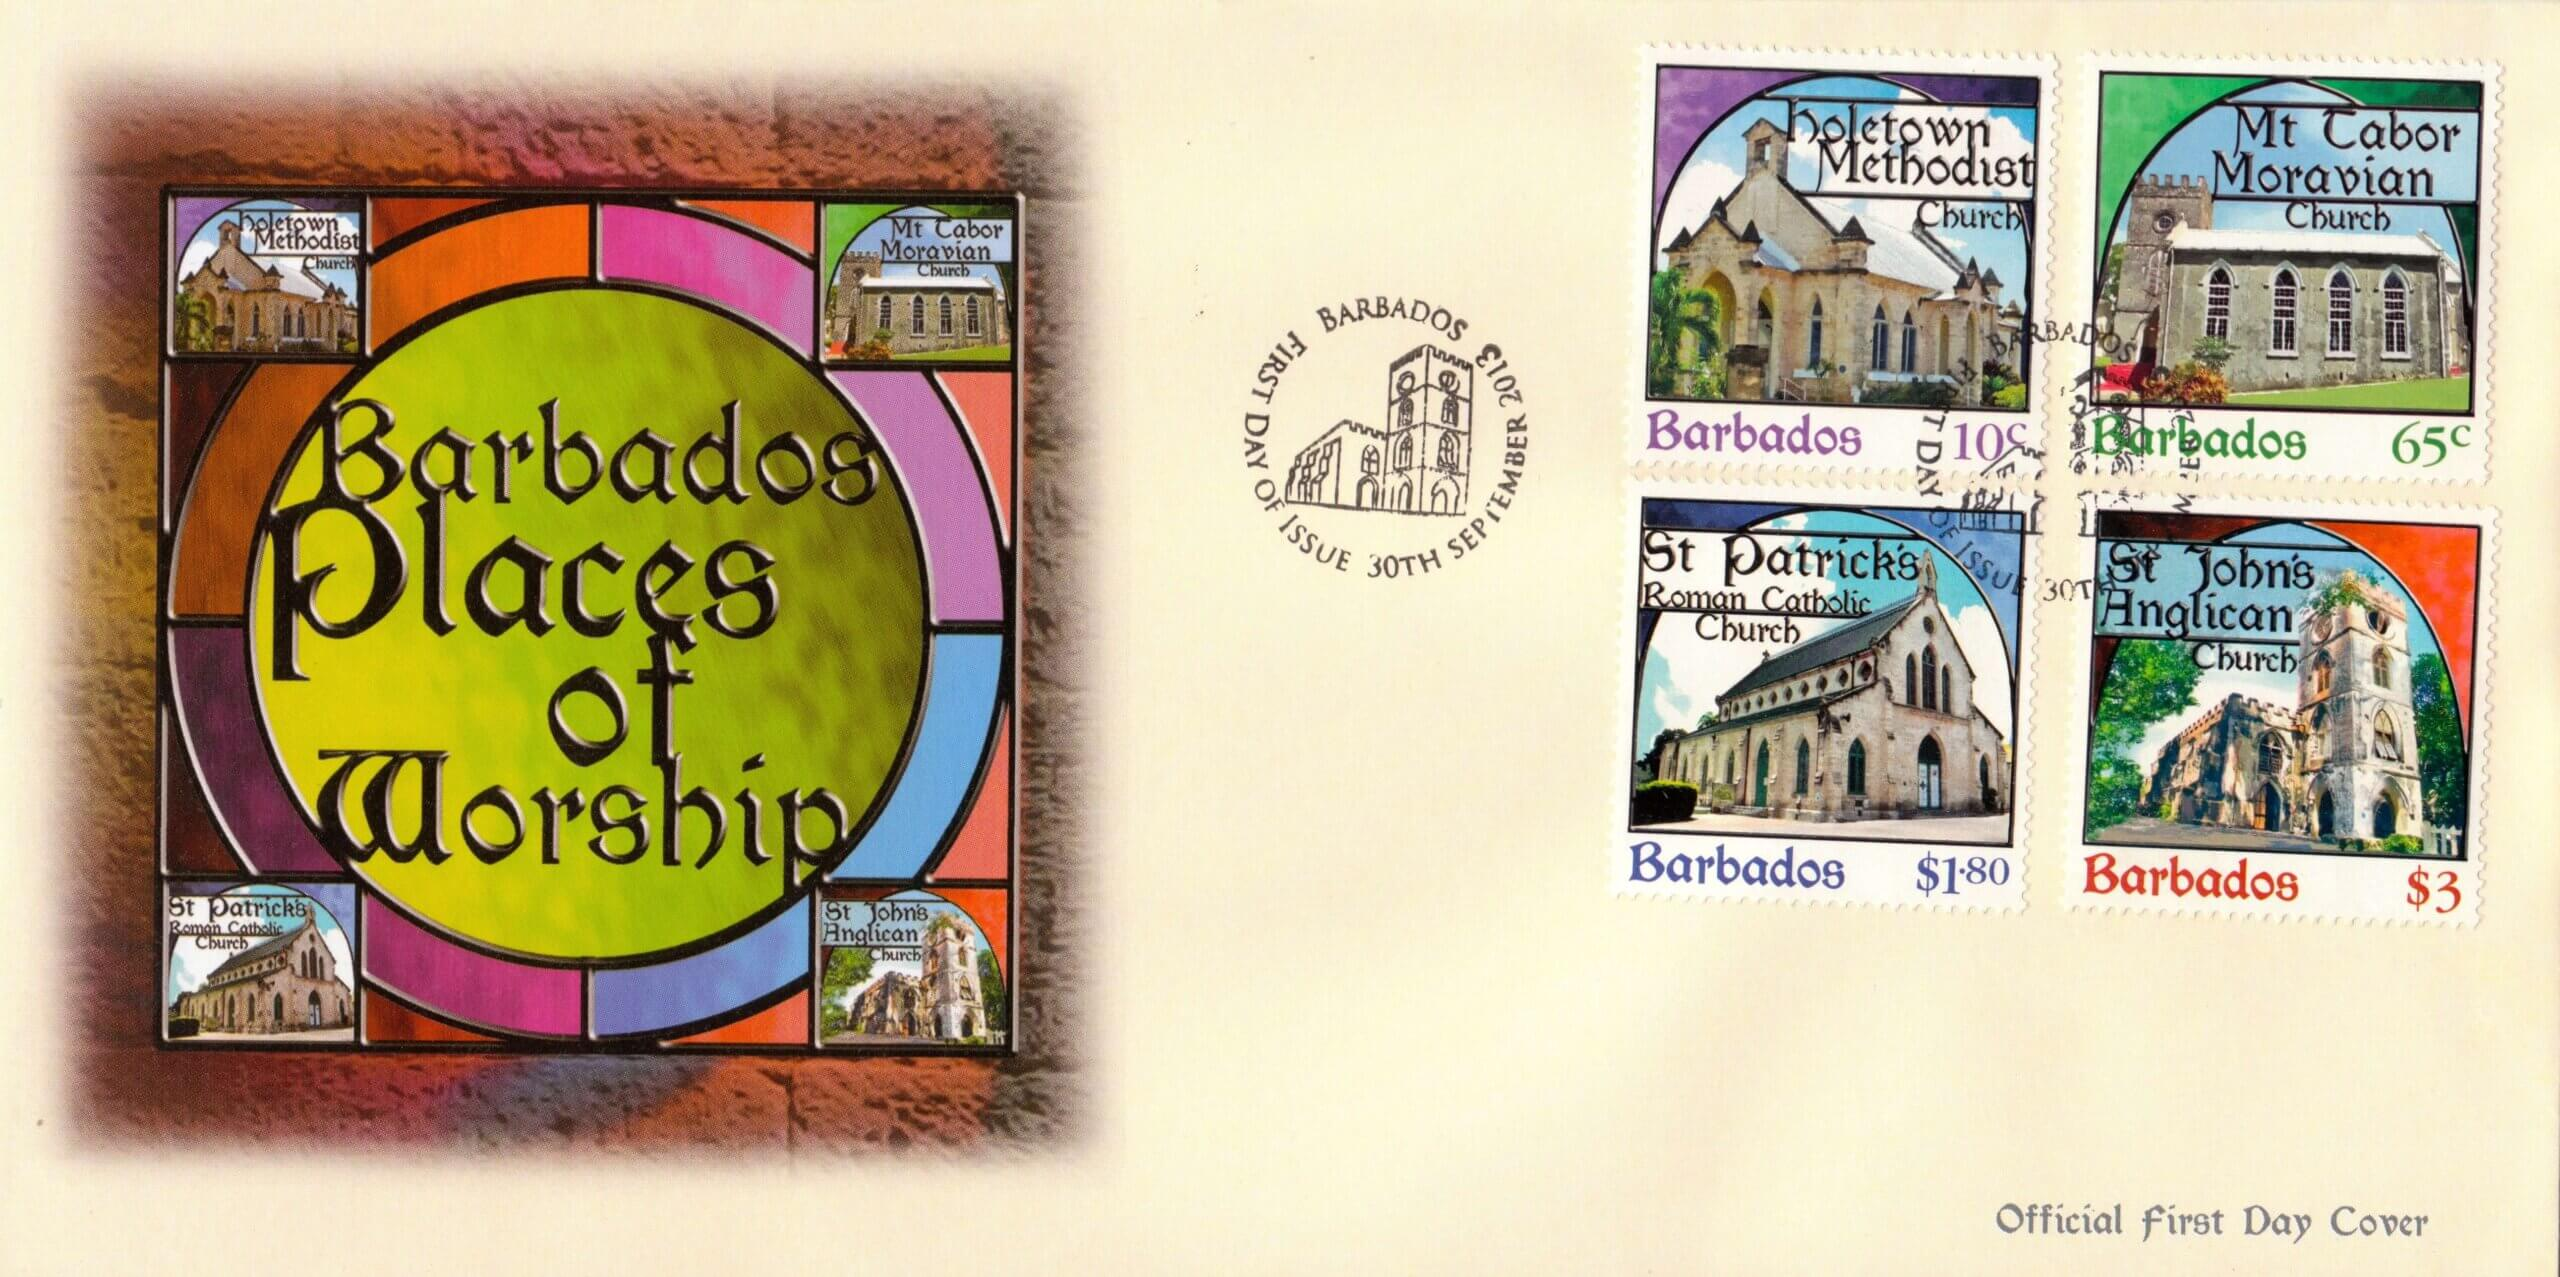 Places of Worship First Day Cover - Barbados Stamps